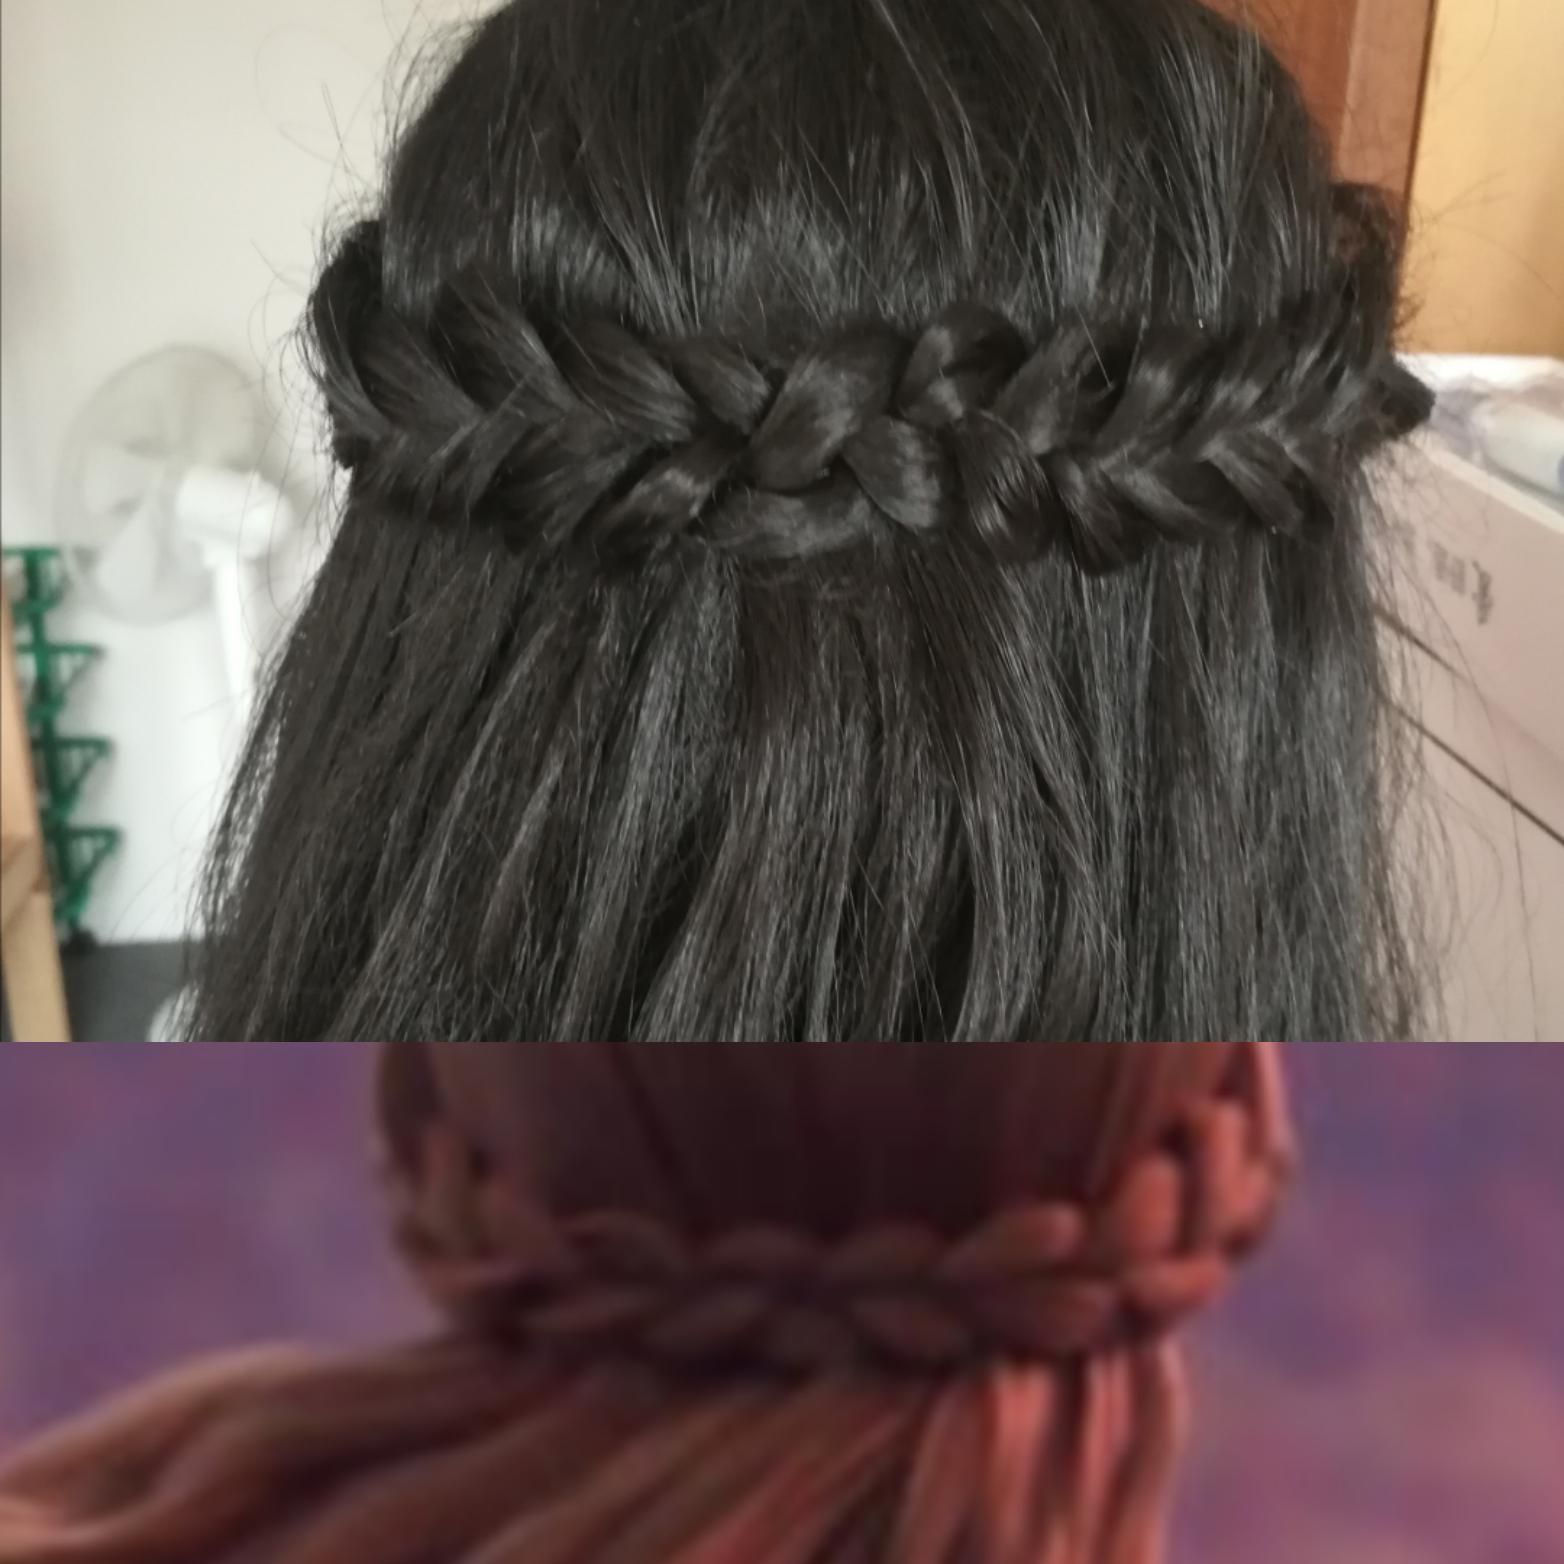 Frozen Hairstyles How To Anna S Coronation Updo Elsa S Braid Frozen Hair Tutorial Frozen Hair Frozen Hairstyles